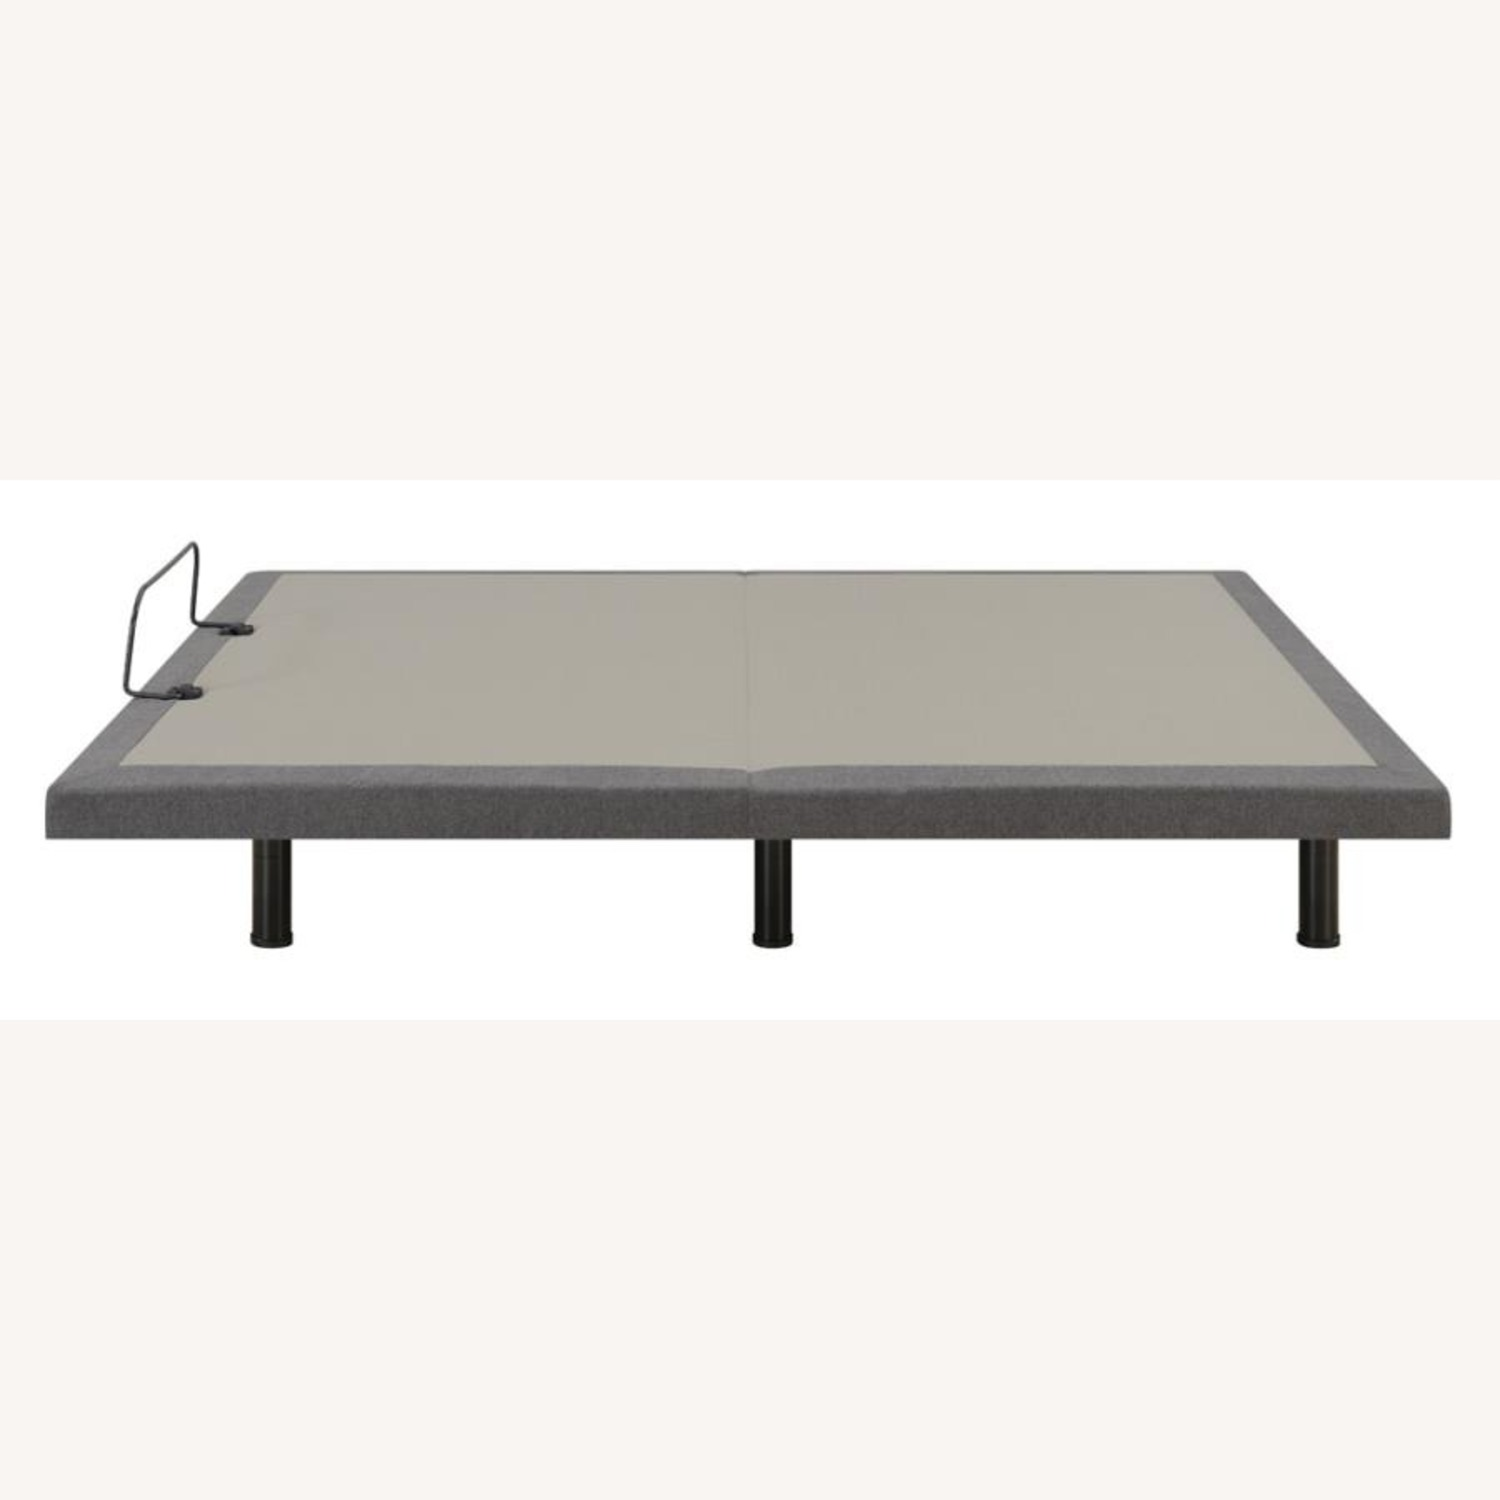 Adjustable Queen Bed W/ Dual USB Charging Station - image-3